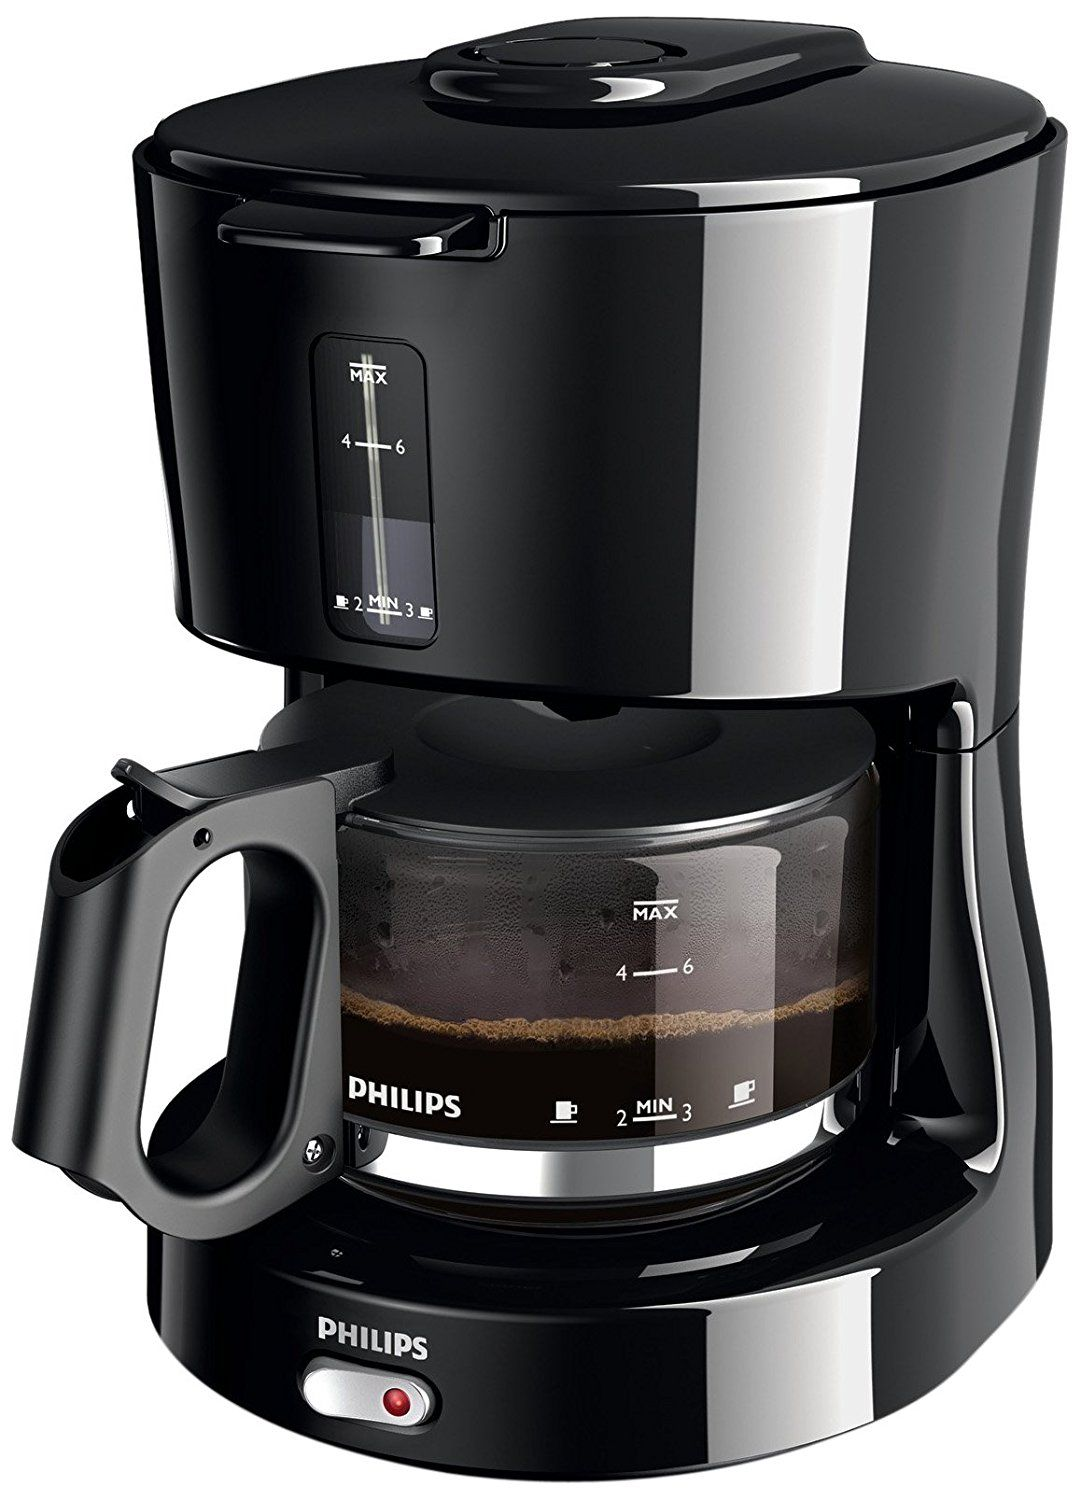 Philips HD7450 6Cup Coffee Maker, 220volt (Not for USA